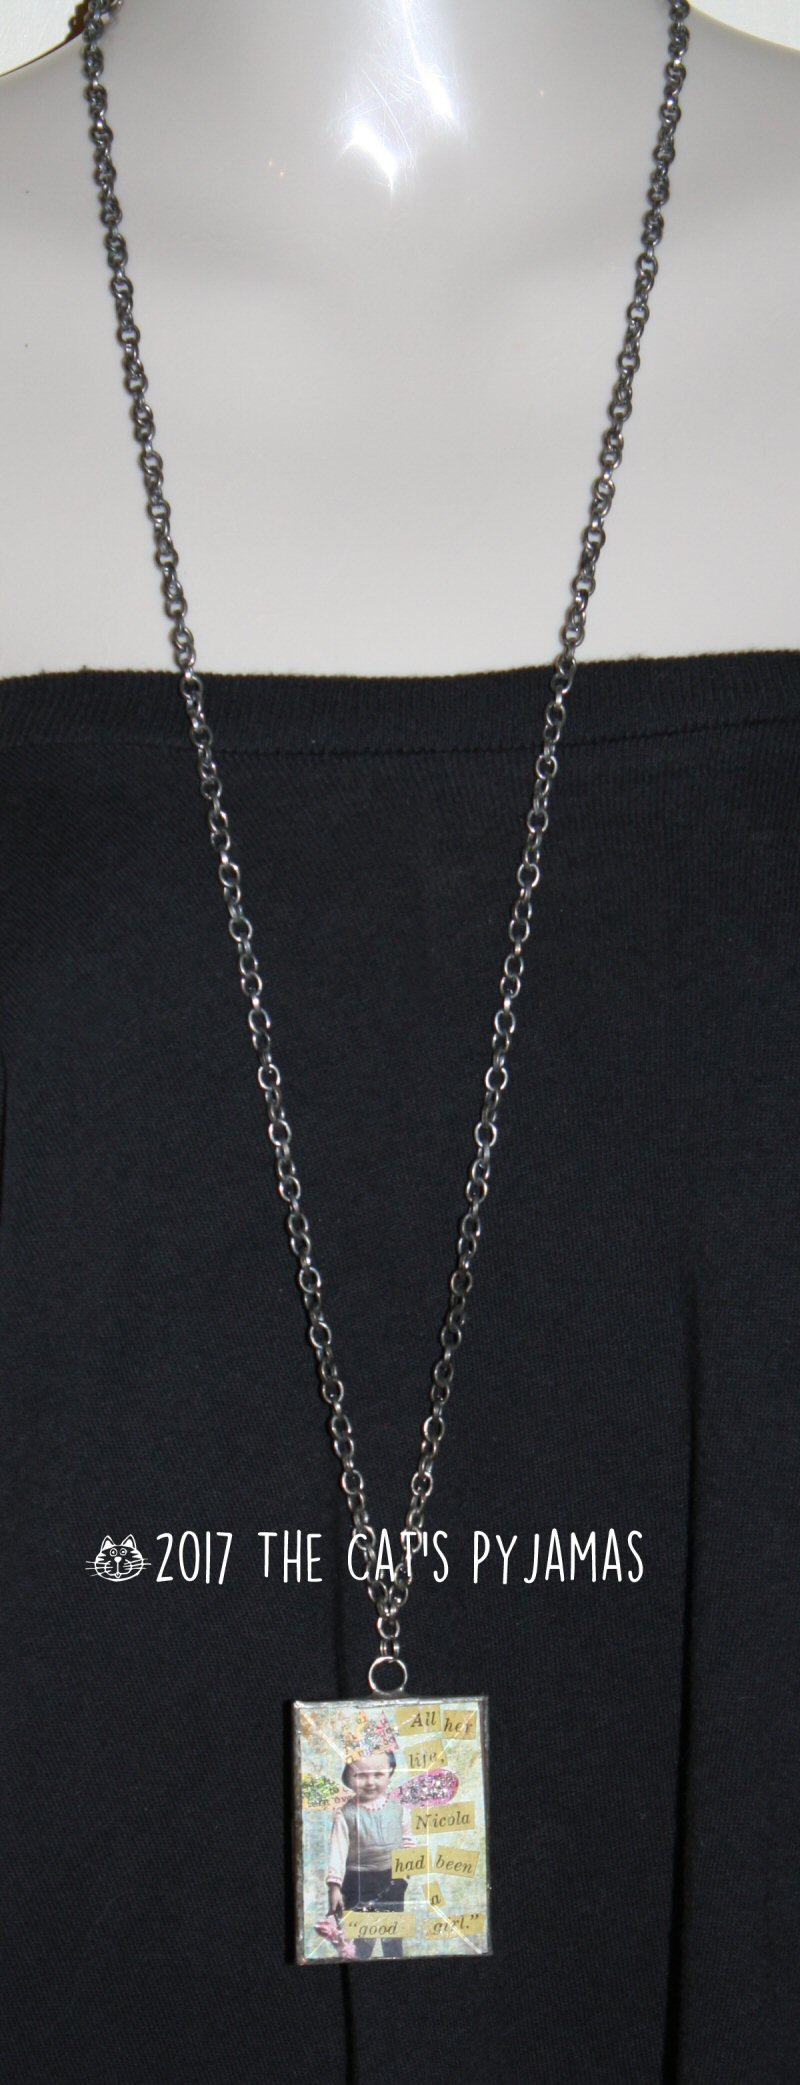 Nicola necklace